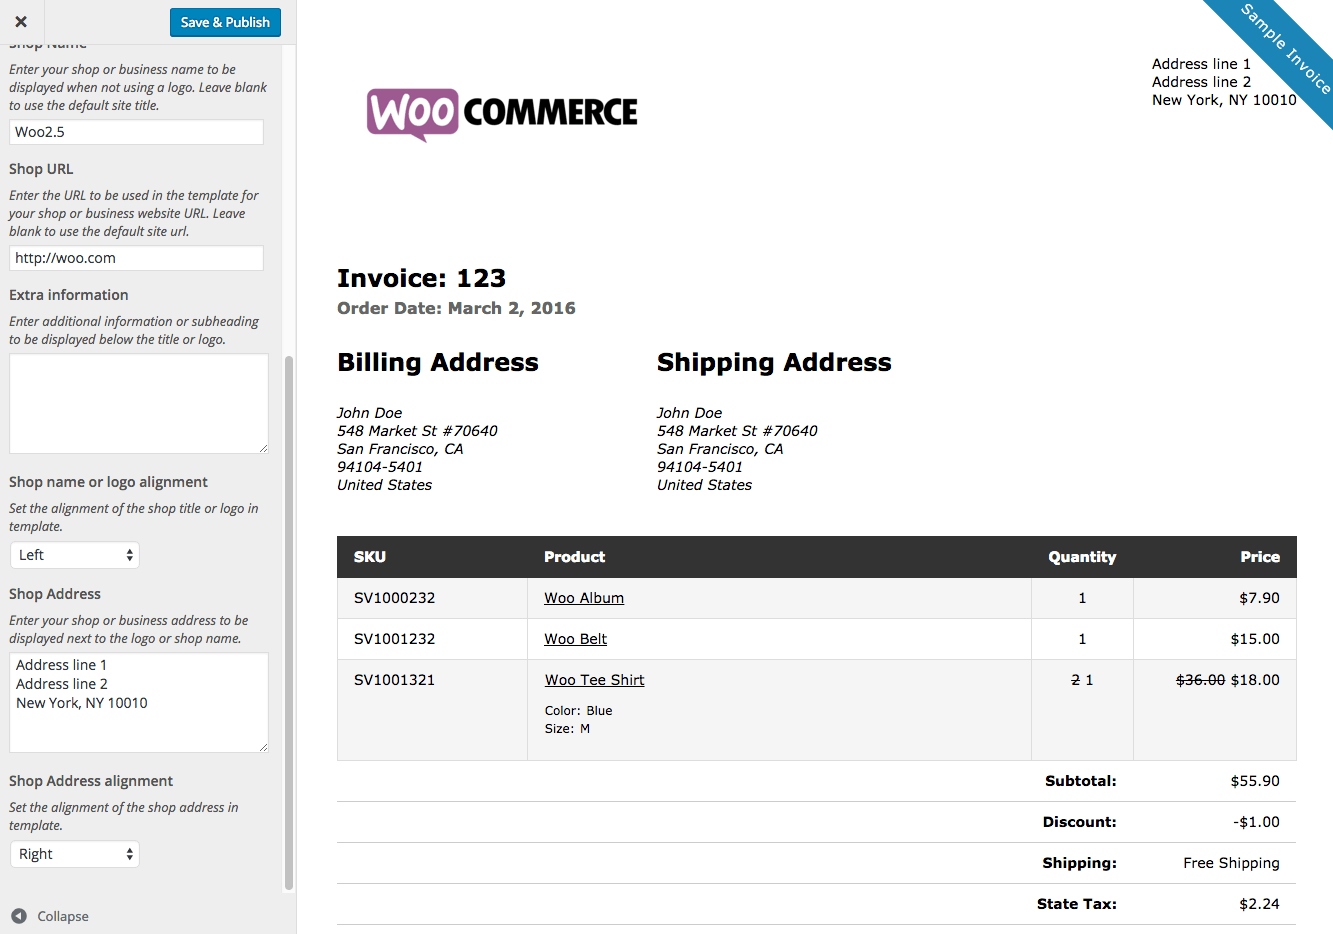 Usdgus  Pleasing Print Invoices Amp Packing Lists  Woocommerce With Magnificent Woocommerce Print Invoices  Packing Lists Customizer With Astounding Builders Invoice Template Also Invoice Price Honda Fit In Addition Invoice For Services Template Free And Sample Copy Of Proforma Invoice As Well As Sample Invoice Terms And Conditions Additionally Custom Invoice Format From Woocommercecom With Usdgus  Magnificent Print Invoices Amp Packing Lists  Woocommerce With Astounding Woocommerce Print Invoices  Packing Lists Customizer And Pleasing Builders Invoice Template Also Invoice Price Honda Fit In Addition Invoice For Services Template Free From Woocommercecom